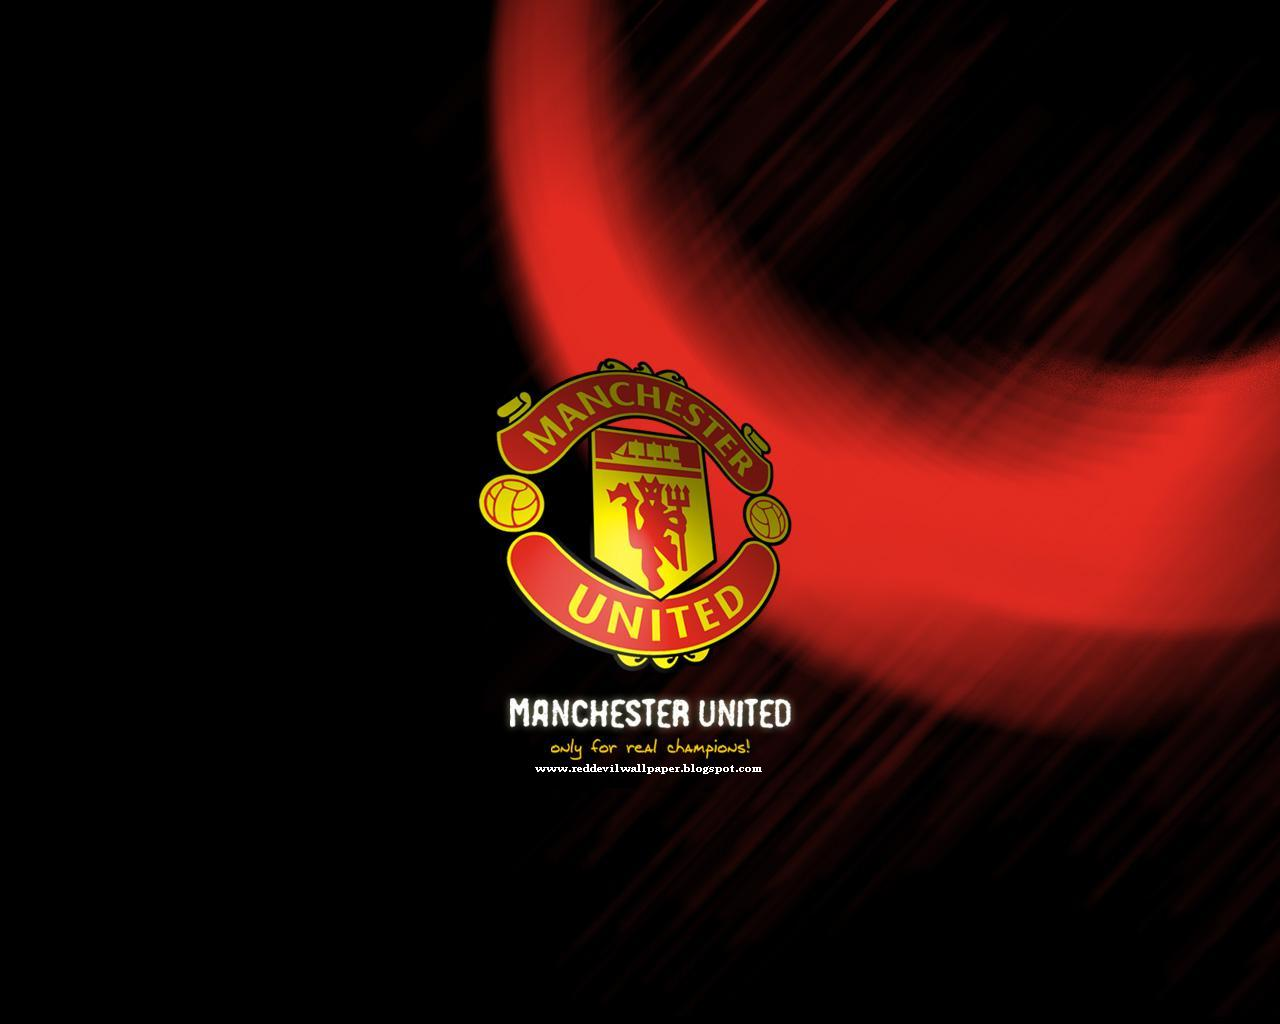 Manchester united logo wallpapers free download manchester united logo wallpapers voltagebd Image collections